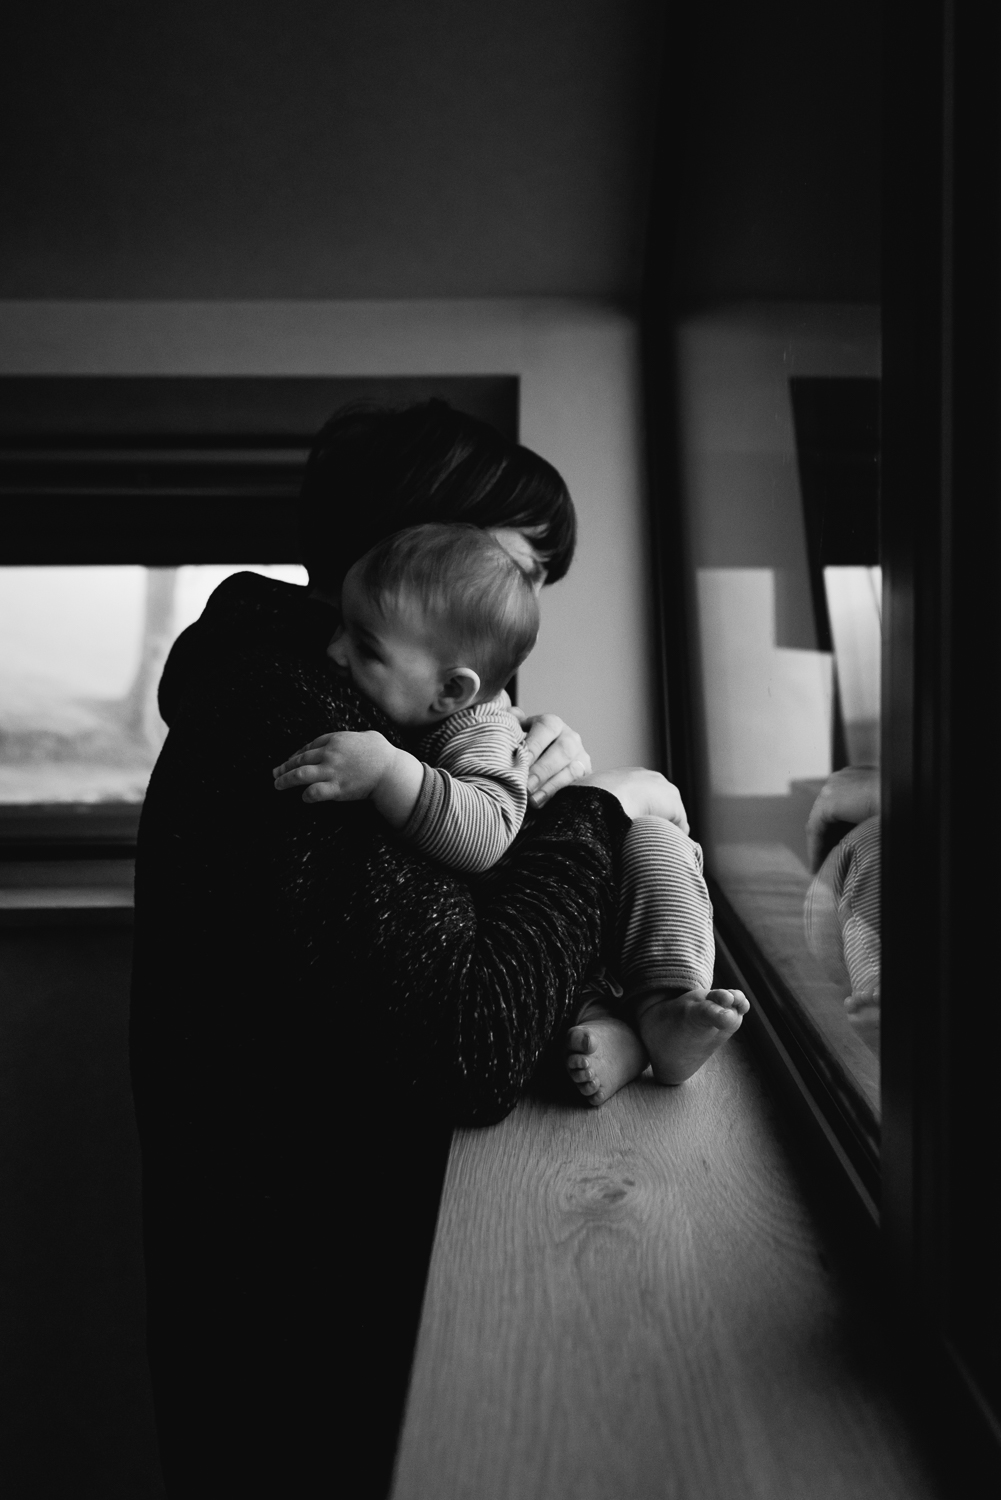 Black and white documentary photograph of a mother cuddling her